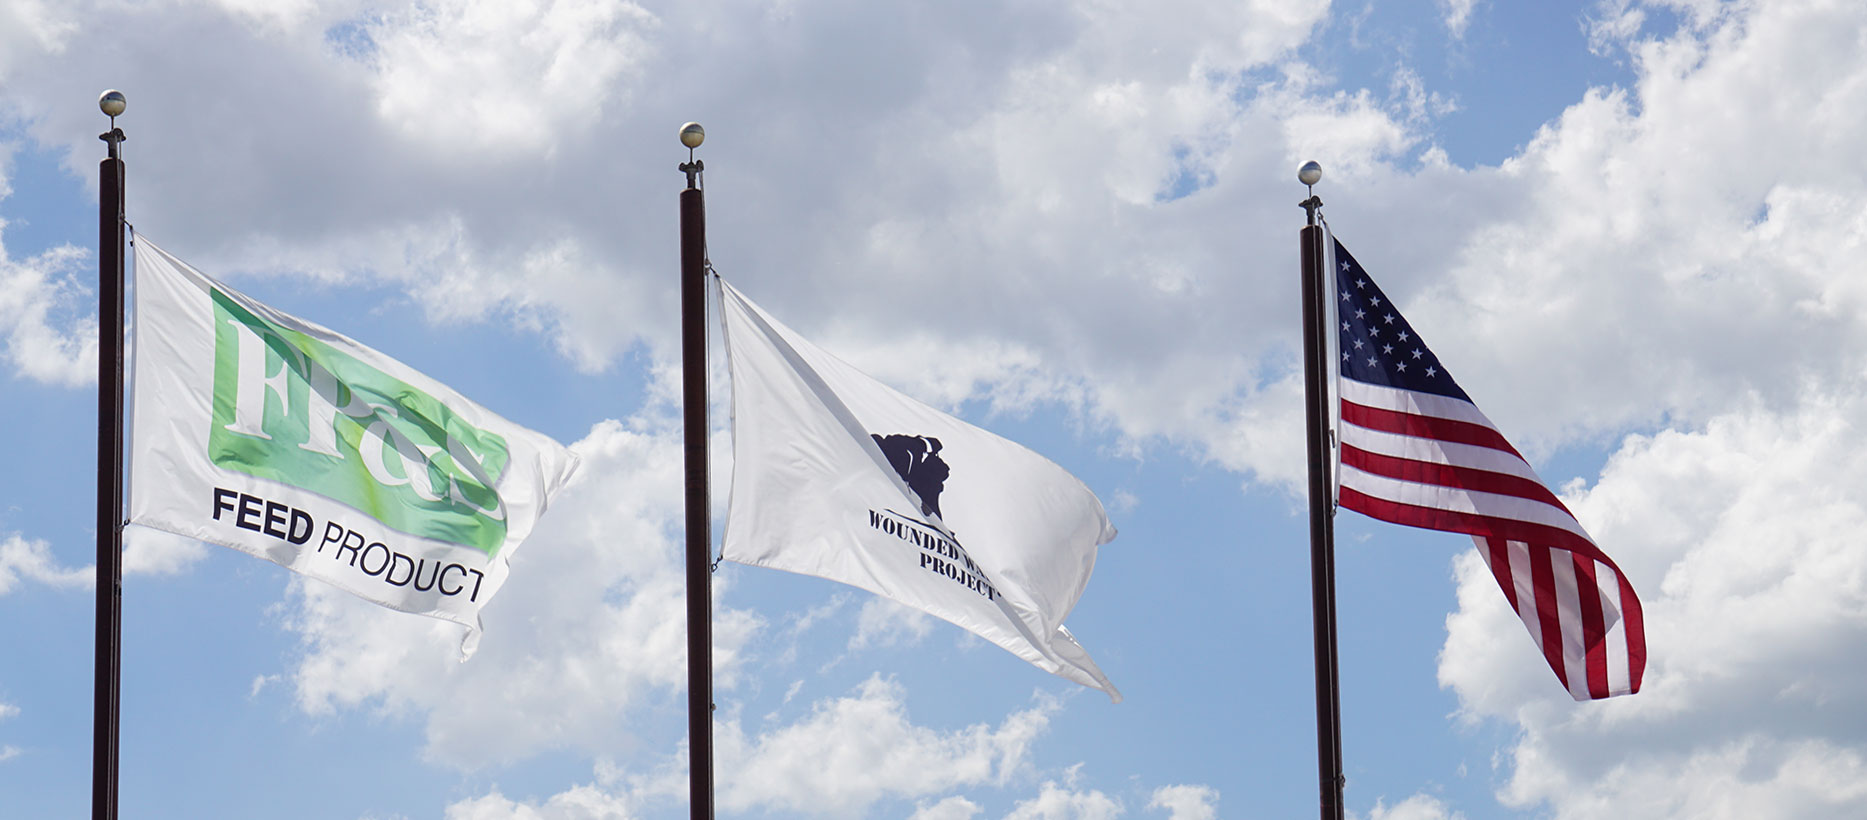 Three flags fly high at our Madison plant - the U.S. flag, Wounded Warrior Project and the Feed Products flag